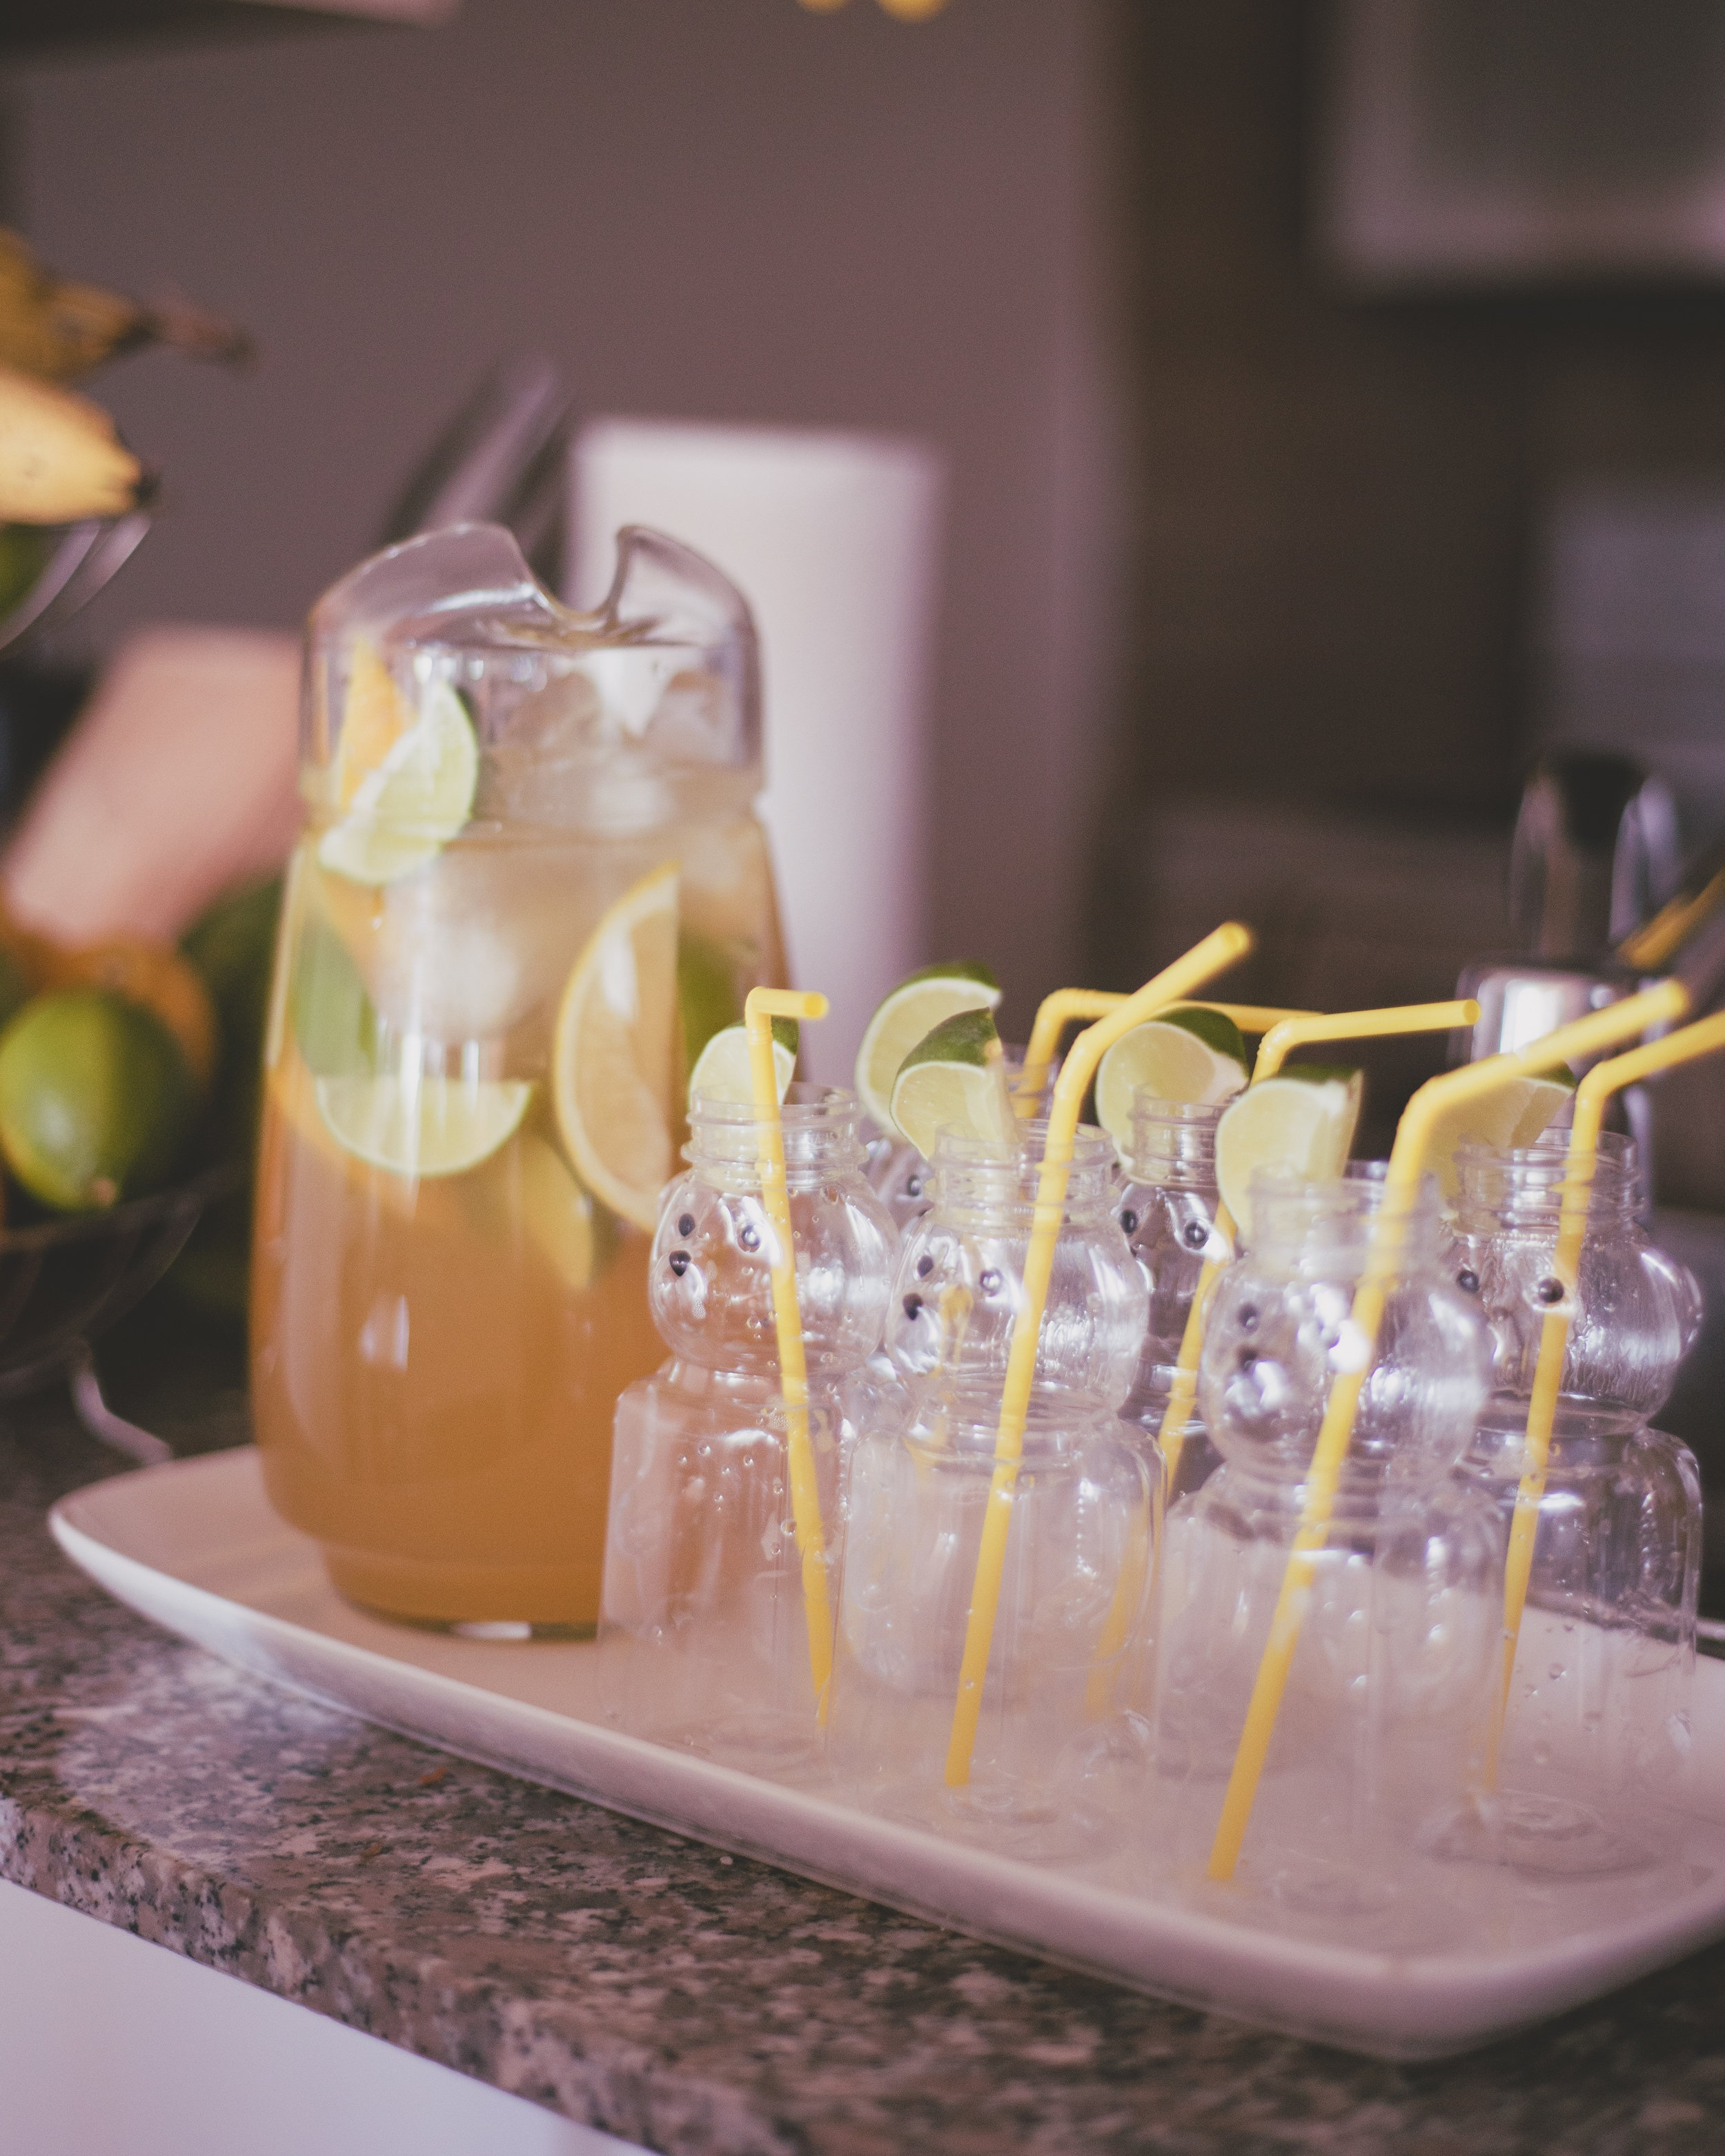 bear-garita_recipe-from-lily-muffins